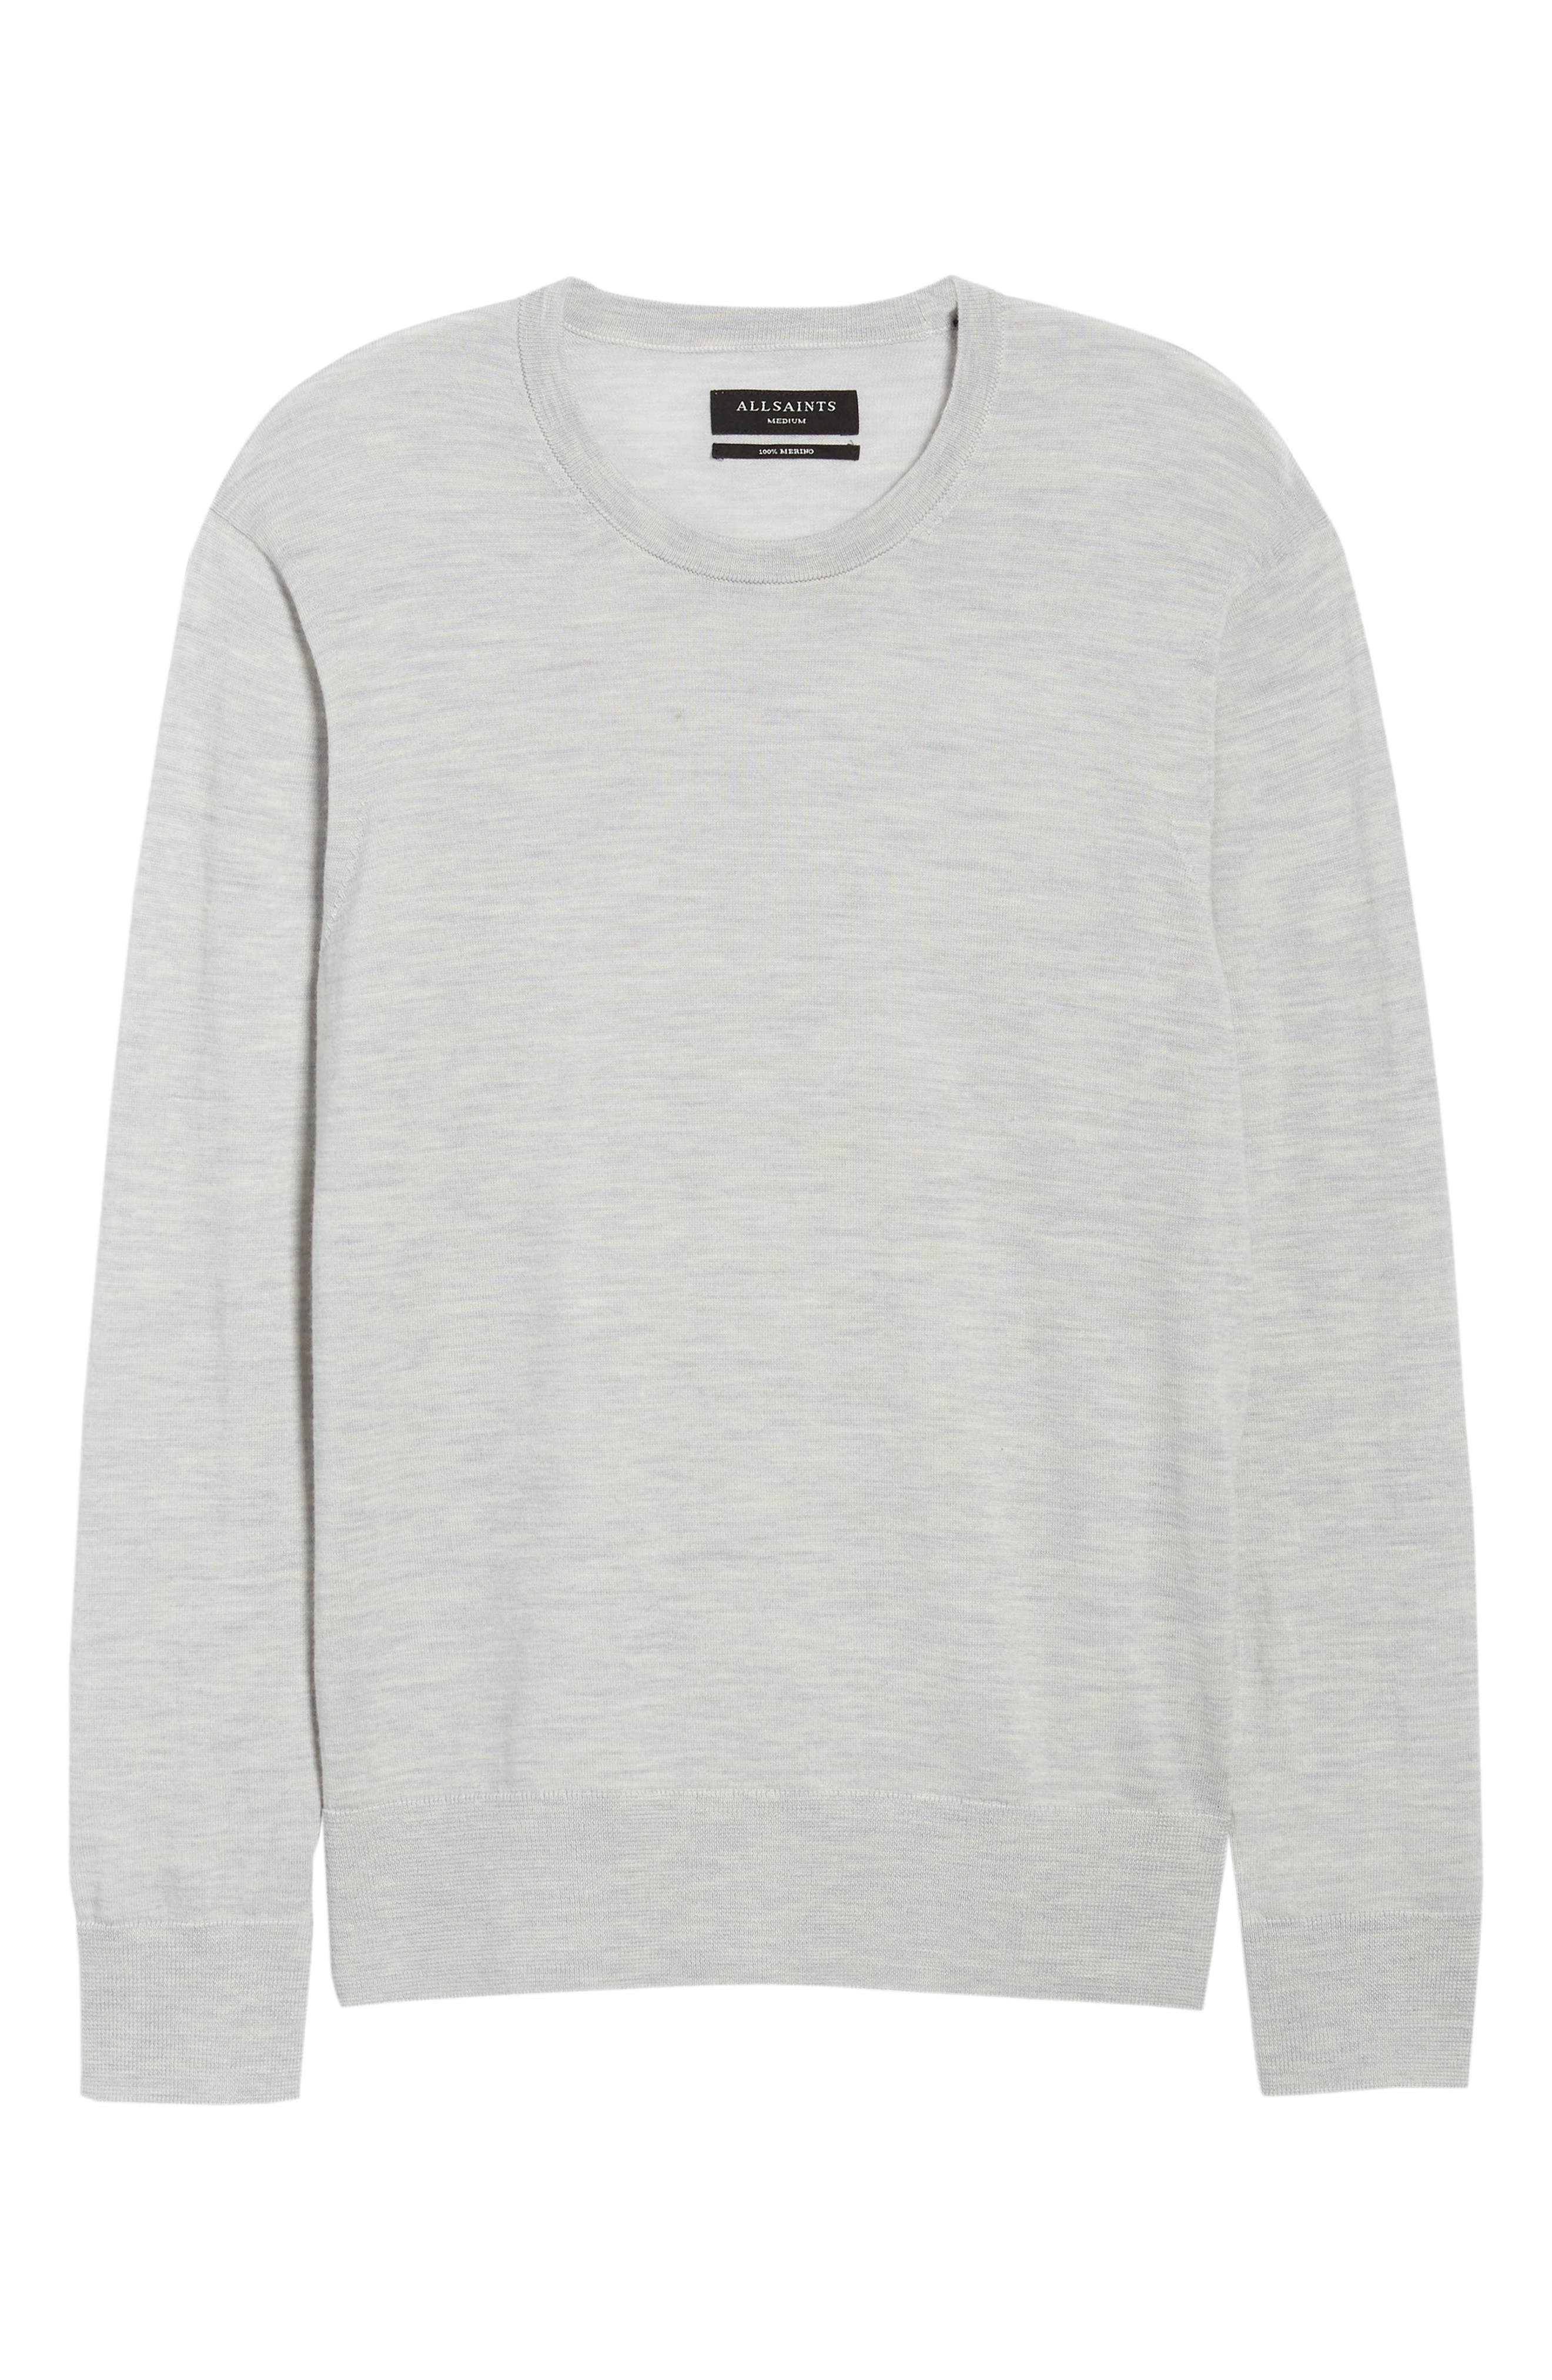 Lang Crewneck Wool Sweater,                             Alternate thumbnail 6, color,                             Light Grey Marl